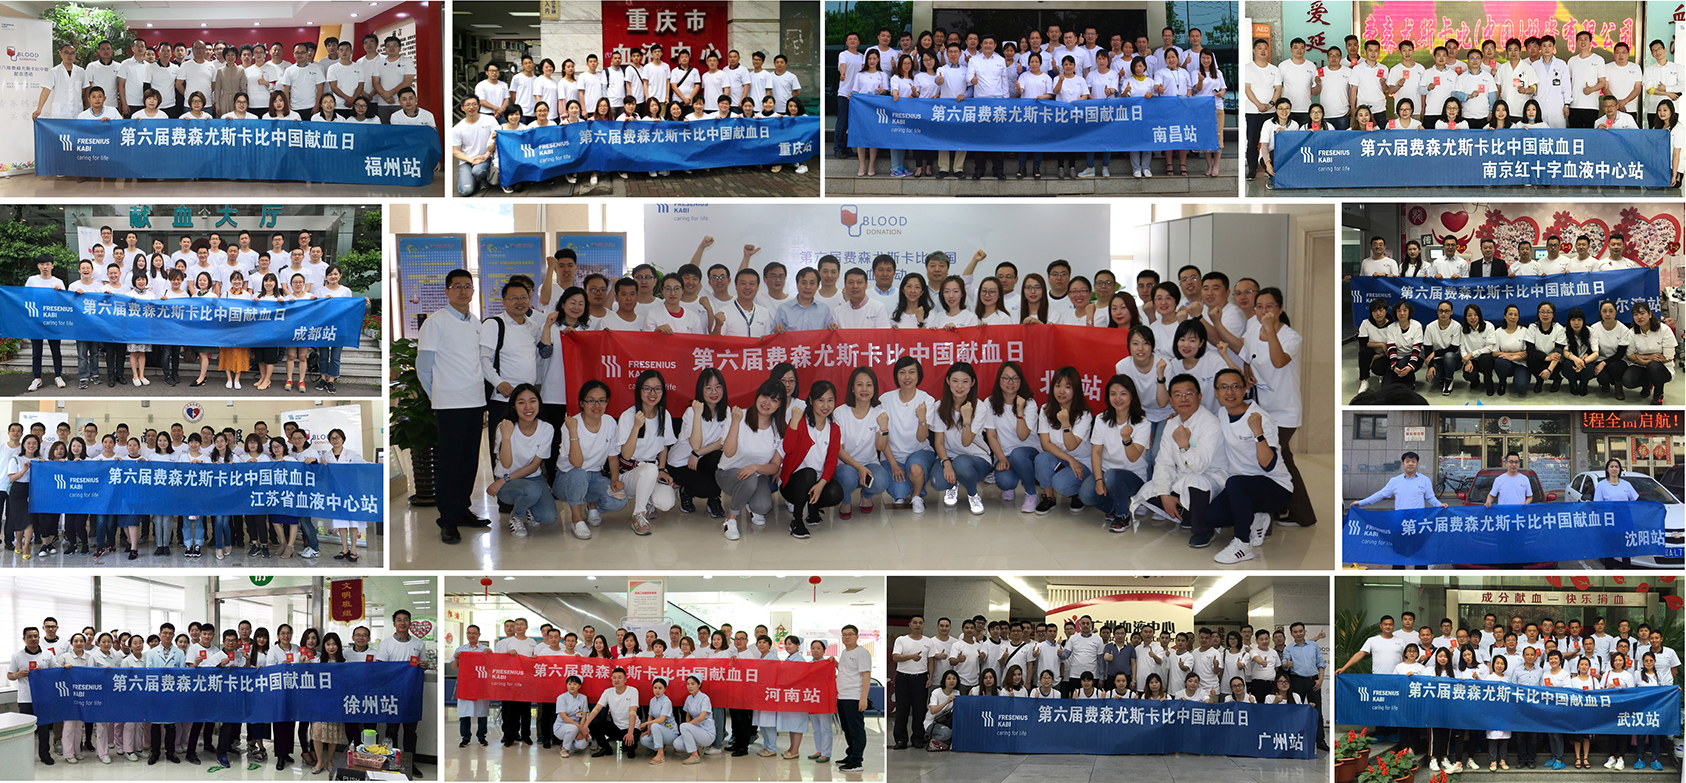 Fresenius Kabi China - 6th Blood Donation Day - Group Photos